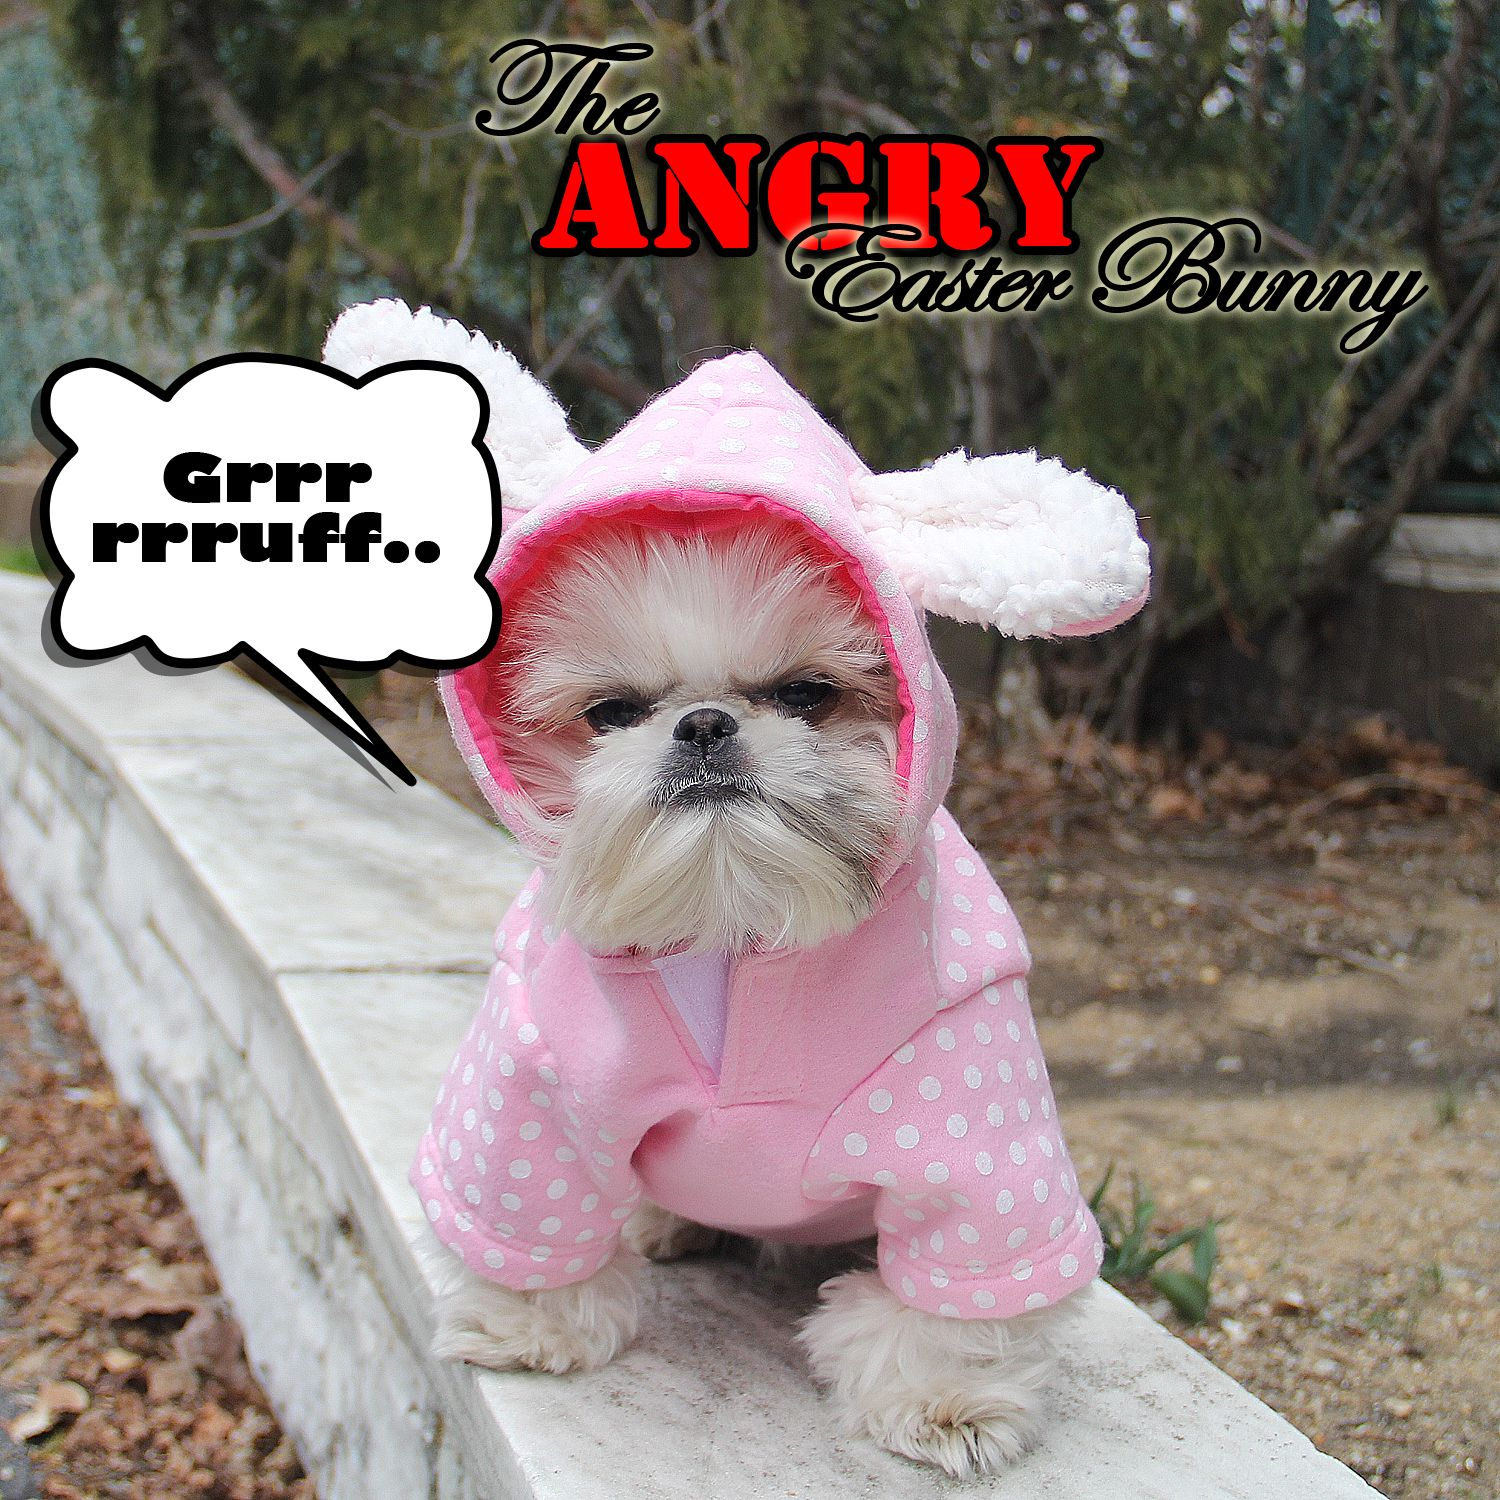 The Angry Easter Bunny Peeing On Your Valuables Shih Tzu Dog